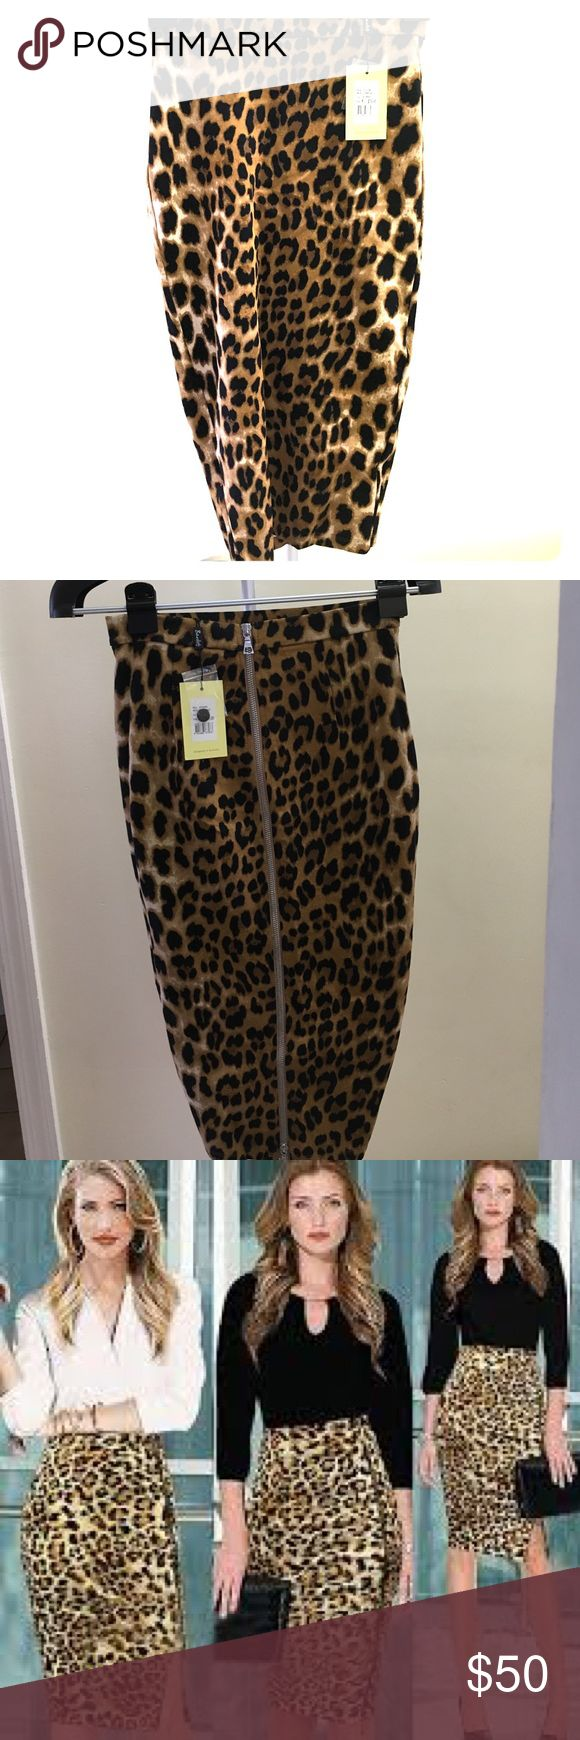 Cheetah skirt This is a very cute skirt that goes with any color its brand new has tags and will be taking offers Bardot  Skirts High Low